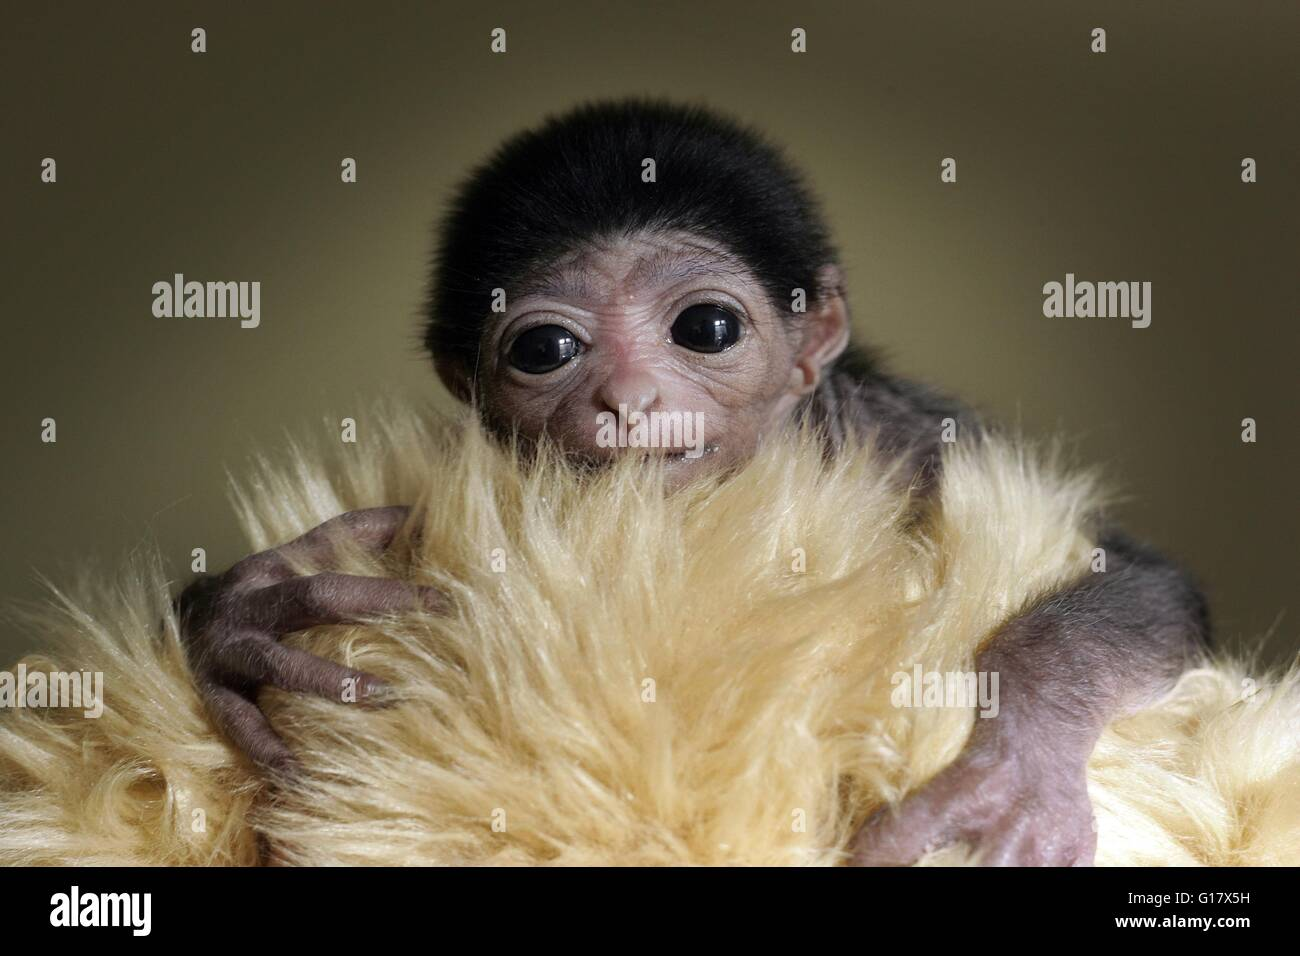 a-baby-lar-gibbon-wrapped-in-a-fake-fur-